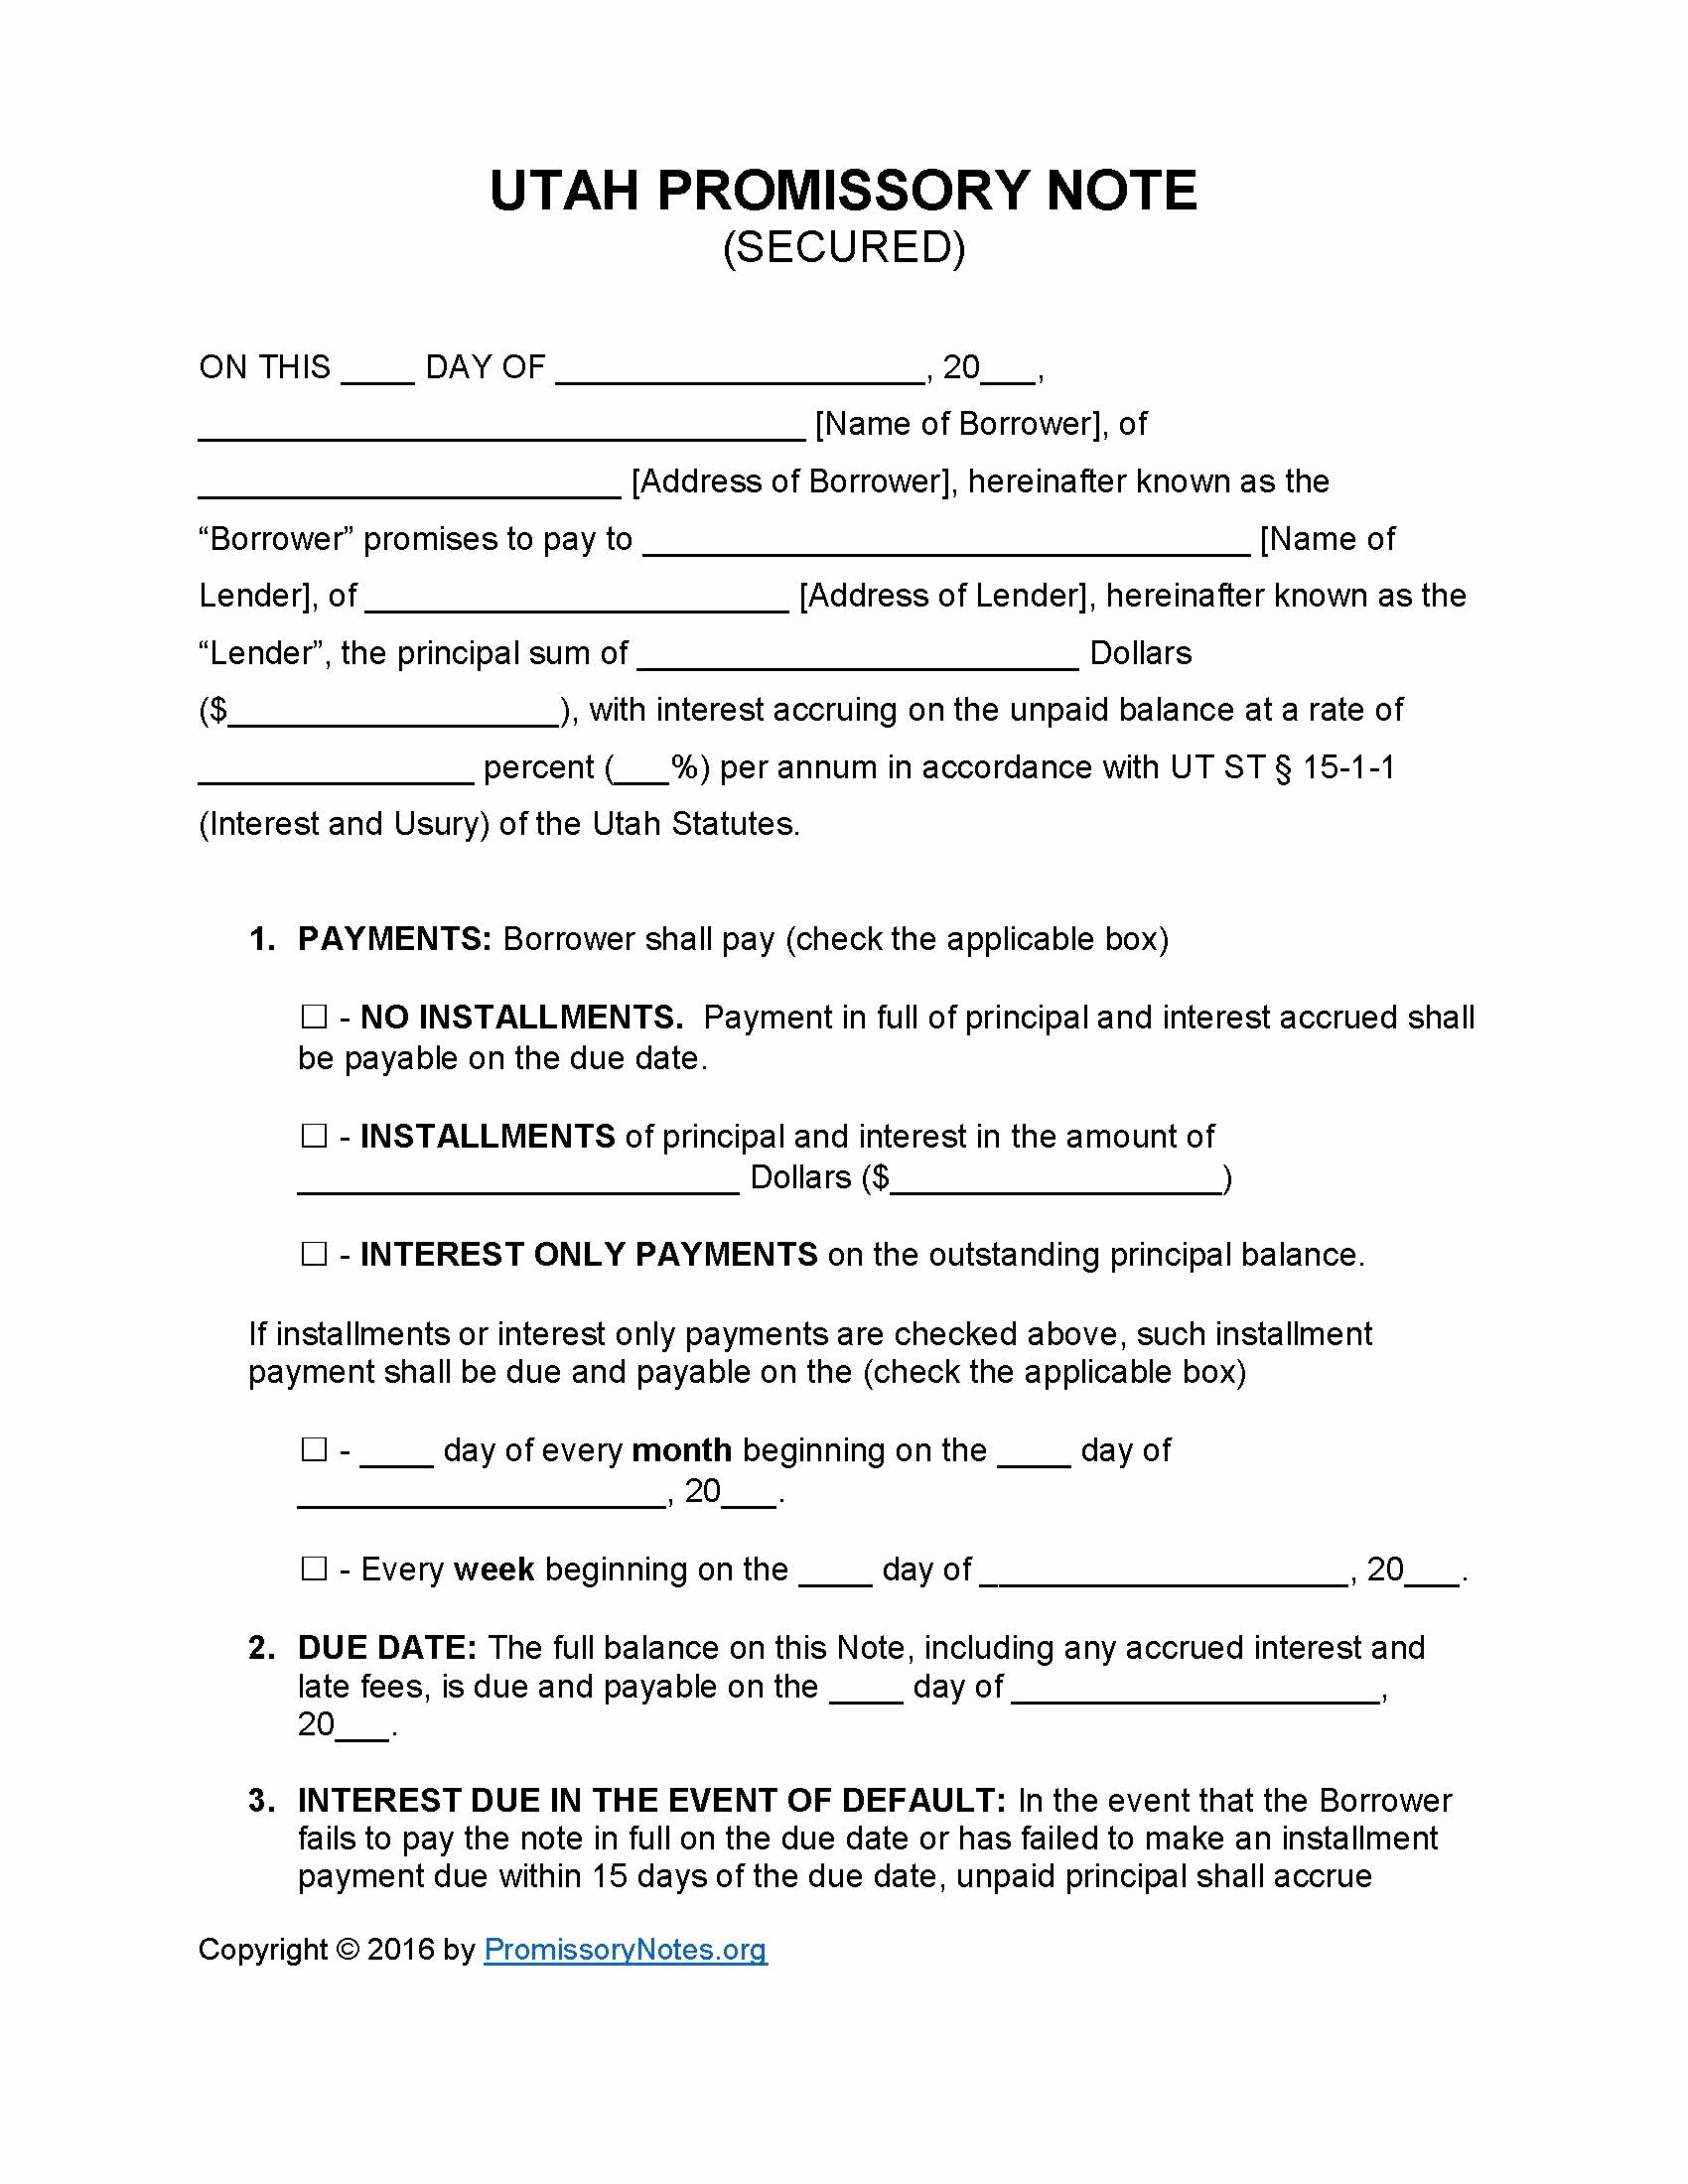 Secured Promissory Note Template Unique Utah Secured Promissory Note Template Promissory Notes Promissory Notes